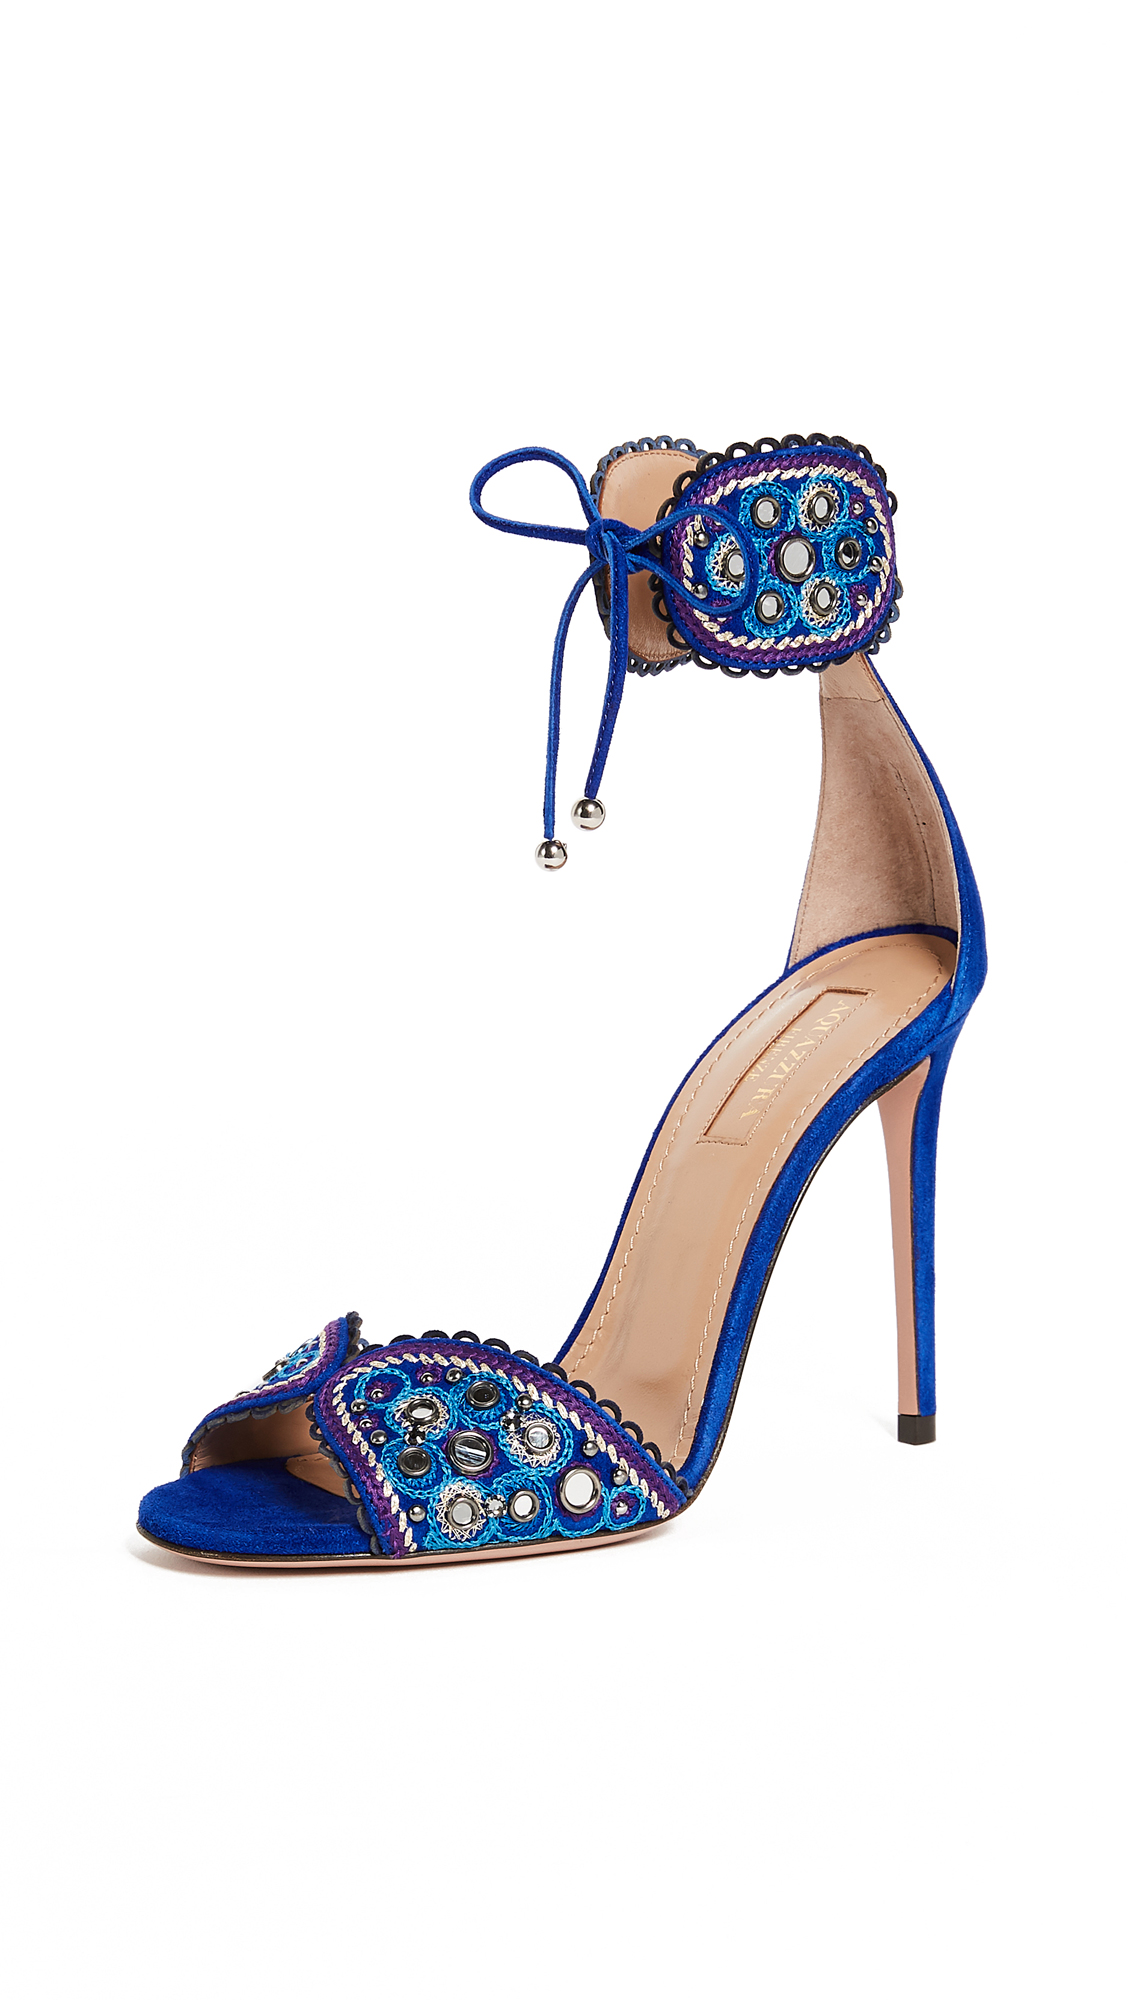 Aquazzura Jaipur 105 Sandals - Blue Bell